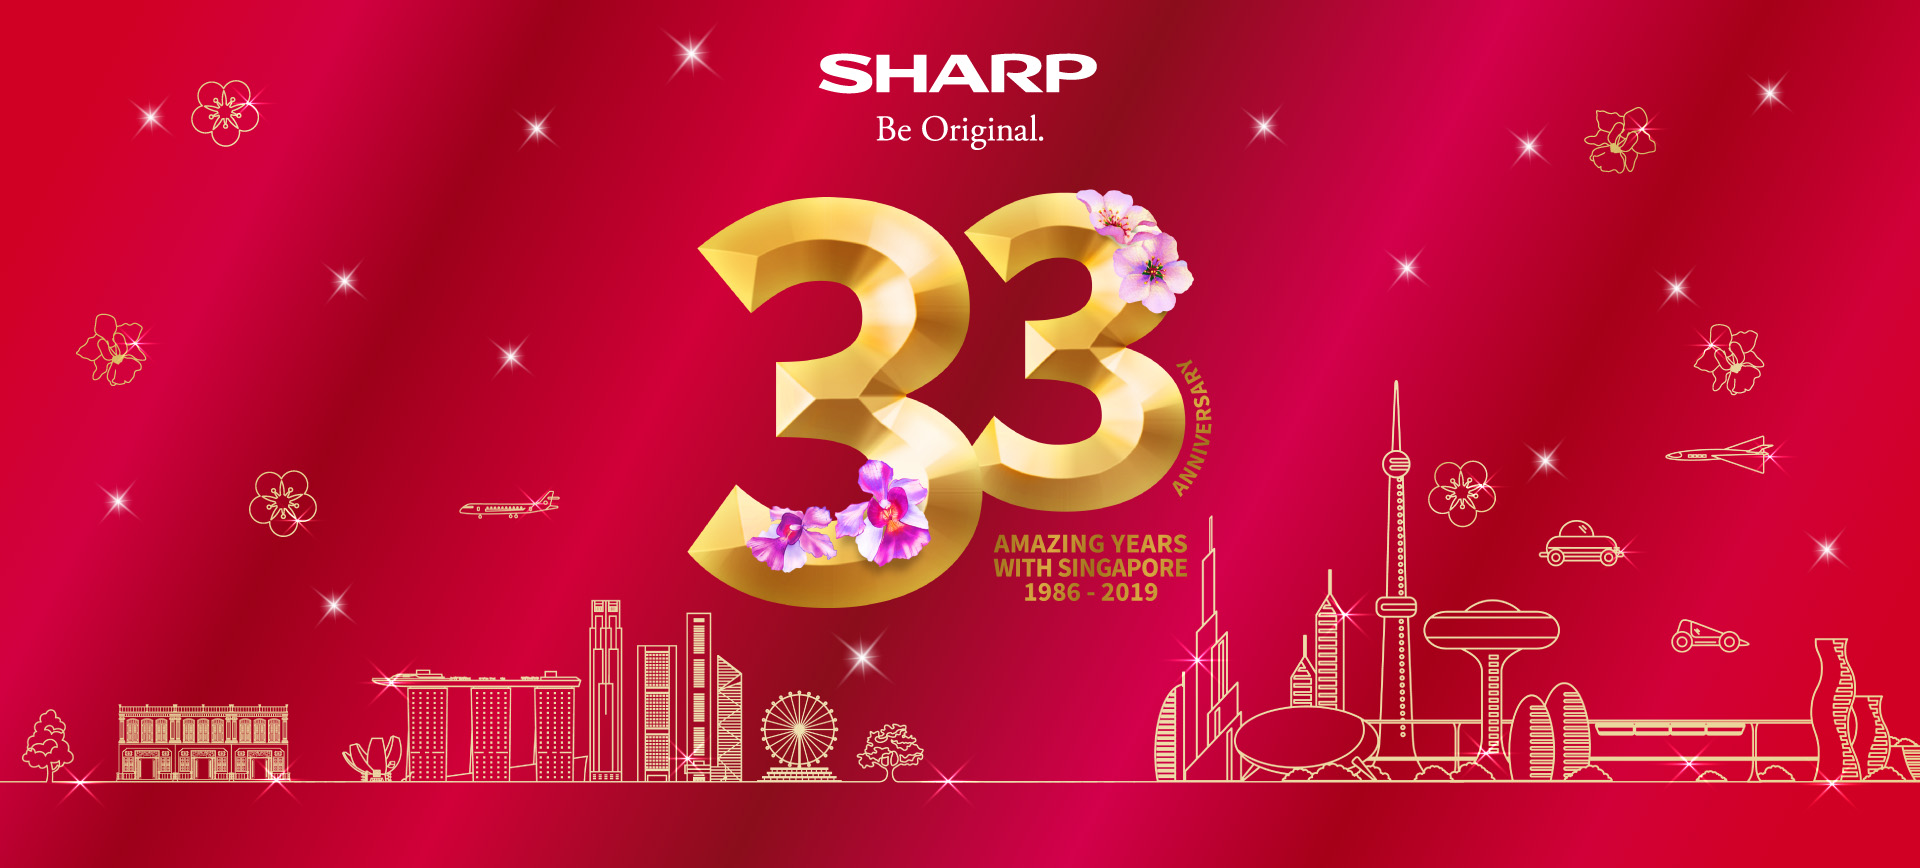 Sharp 33rd Anniversary Year Celebration